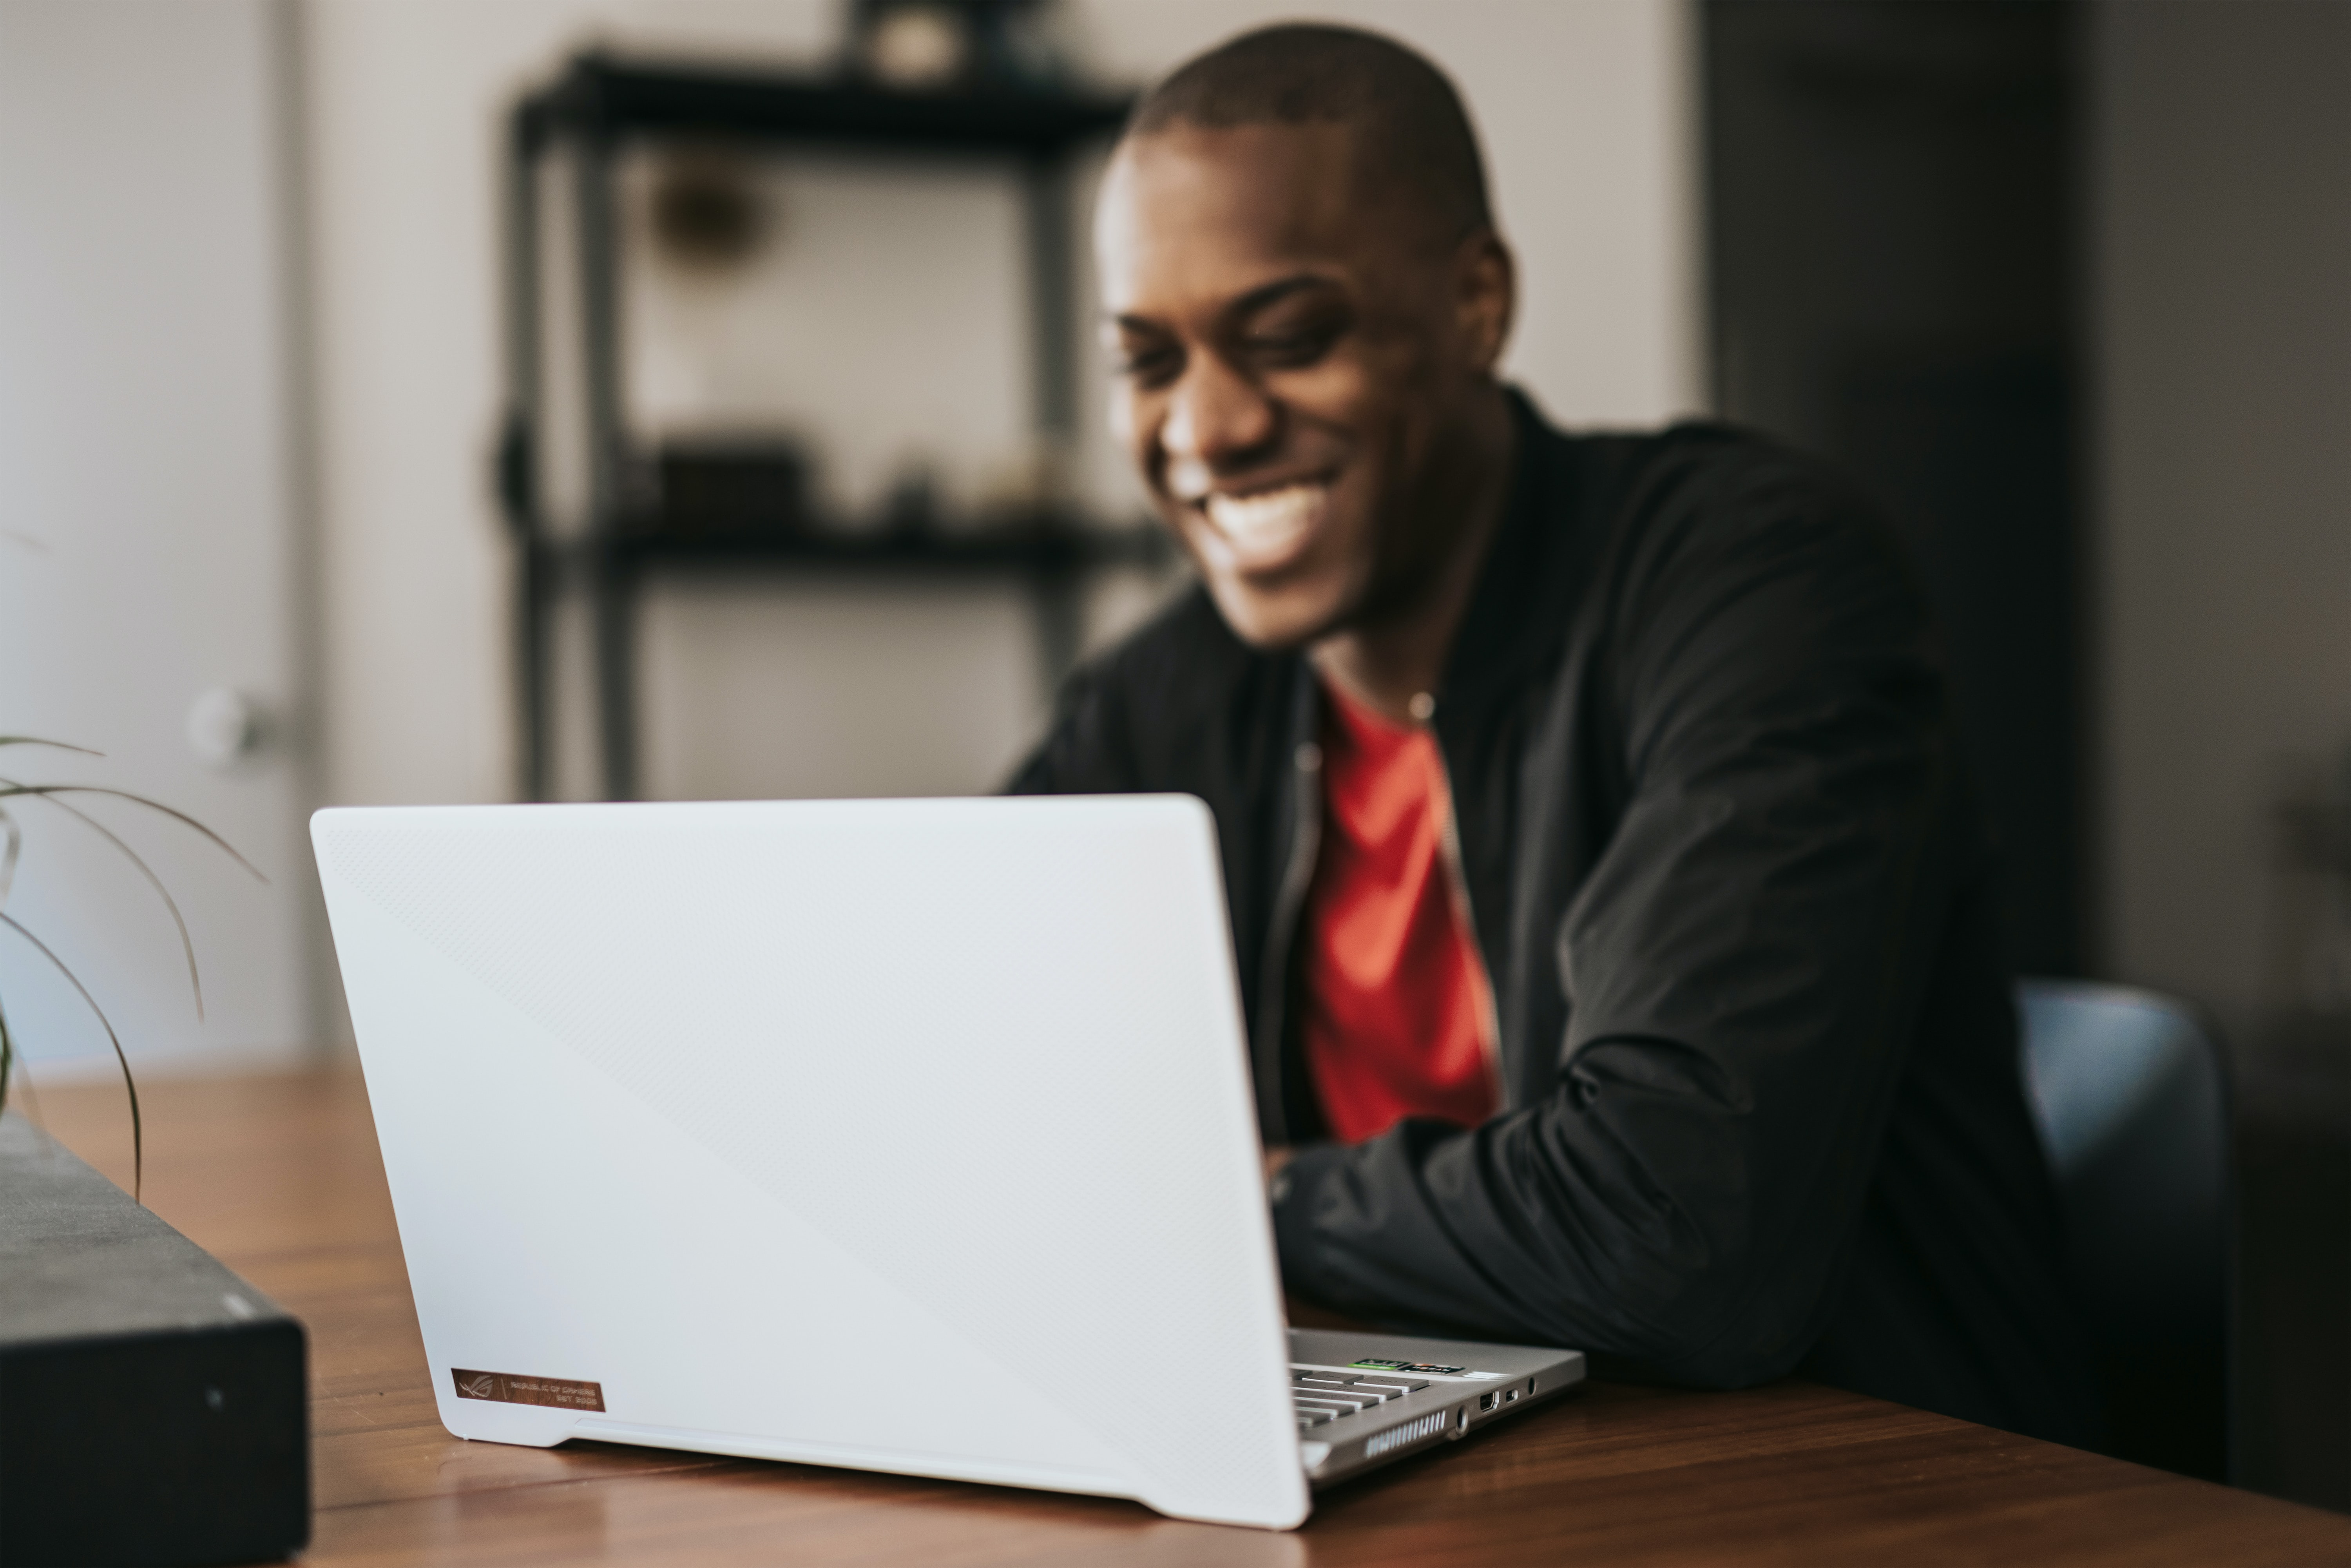 Man smiling while working on laptop | Global agency, BCD Meetings & Events